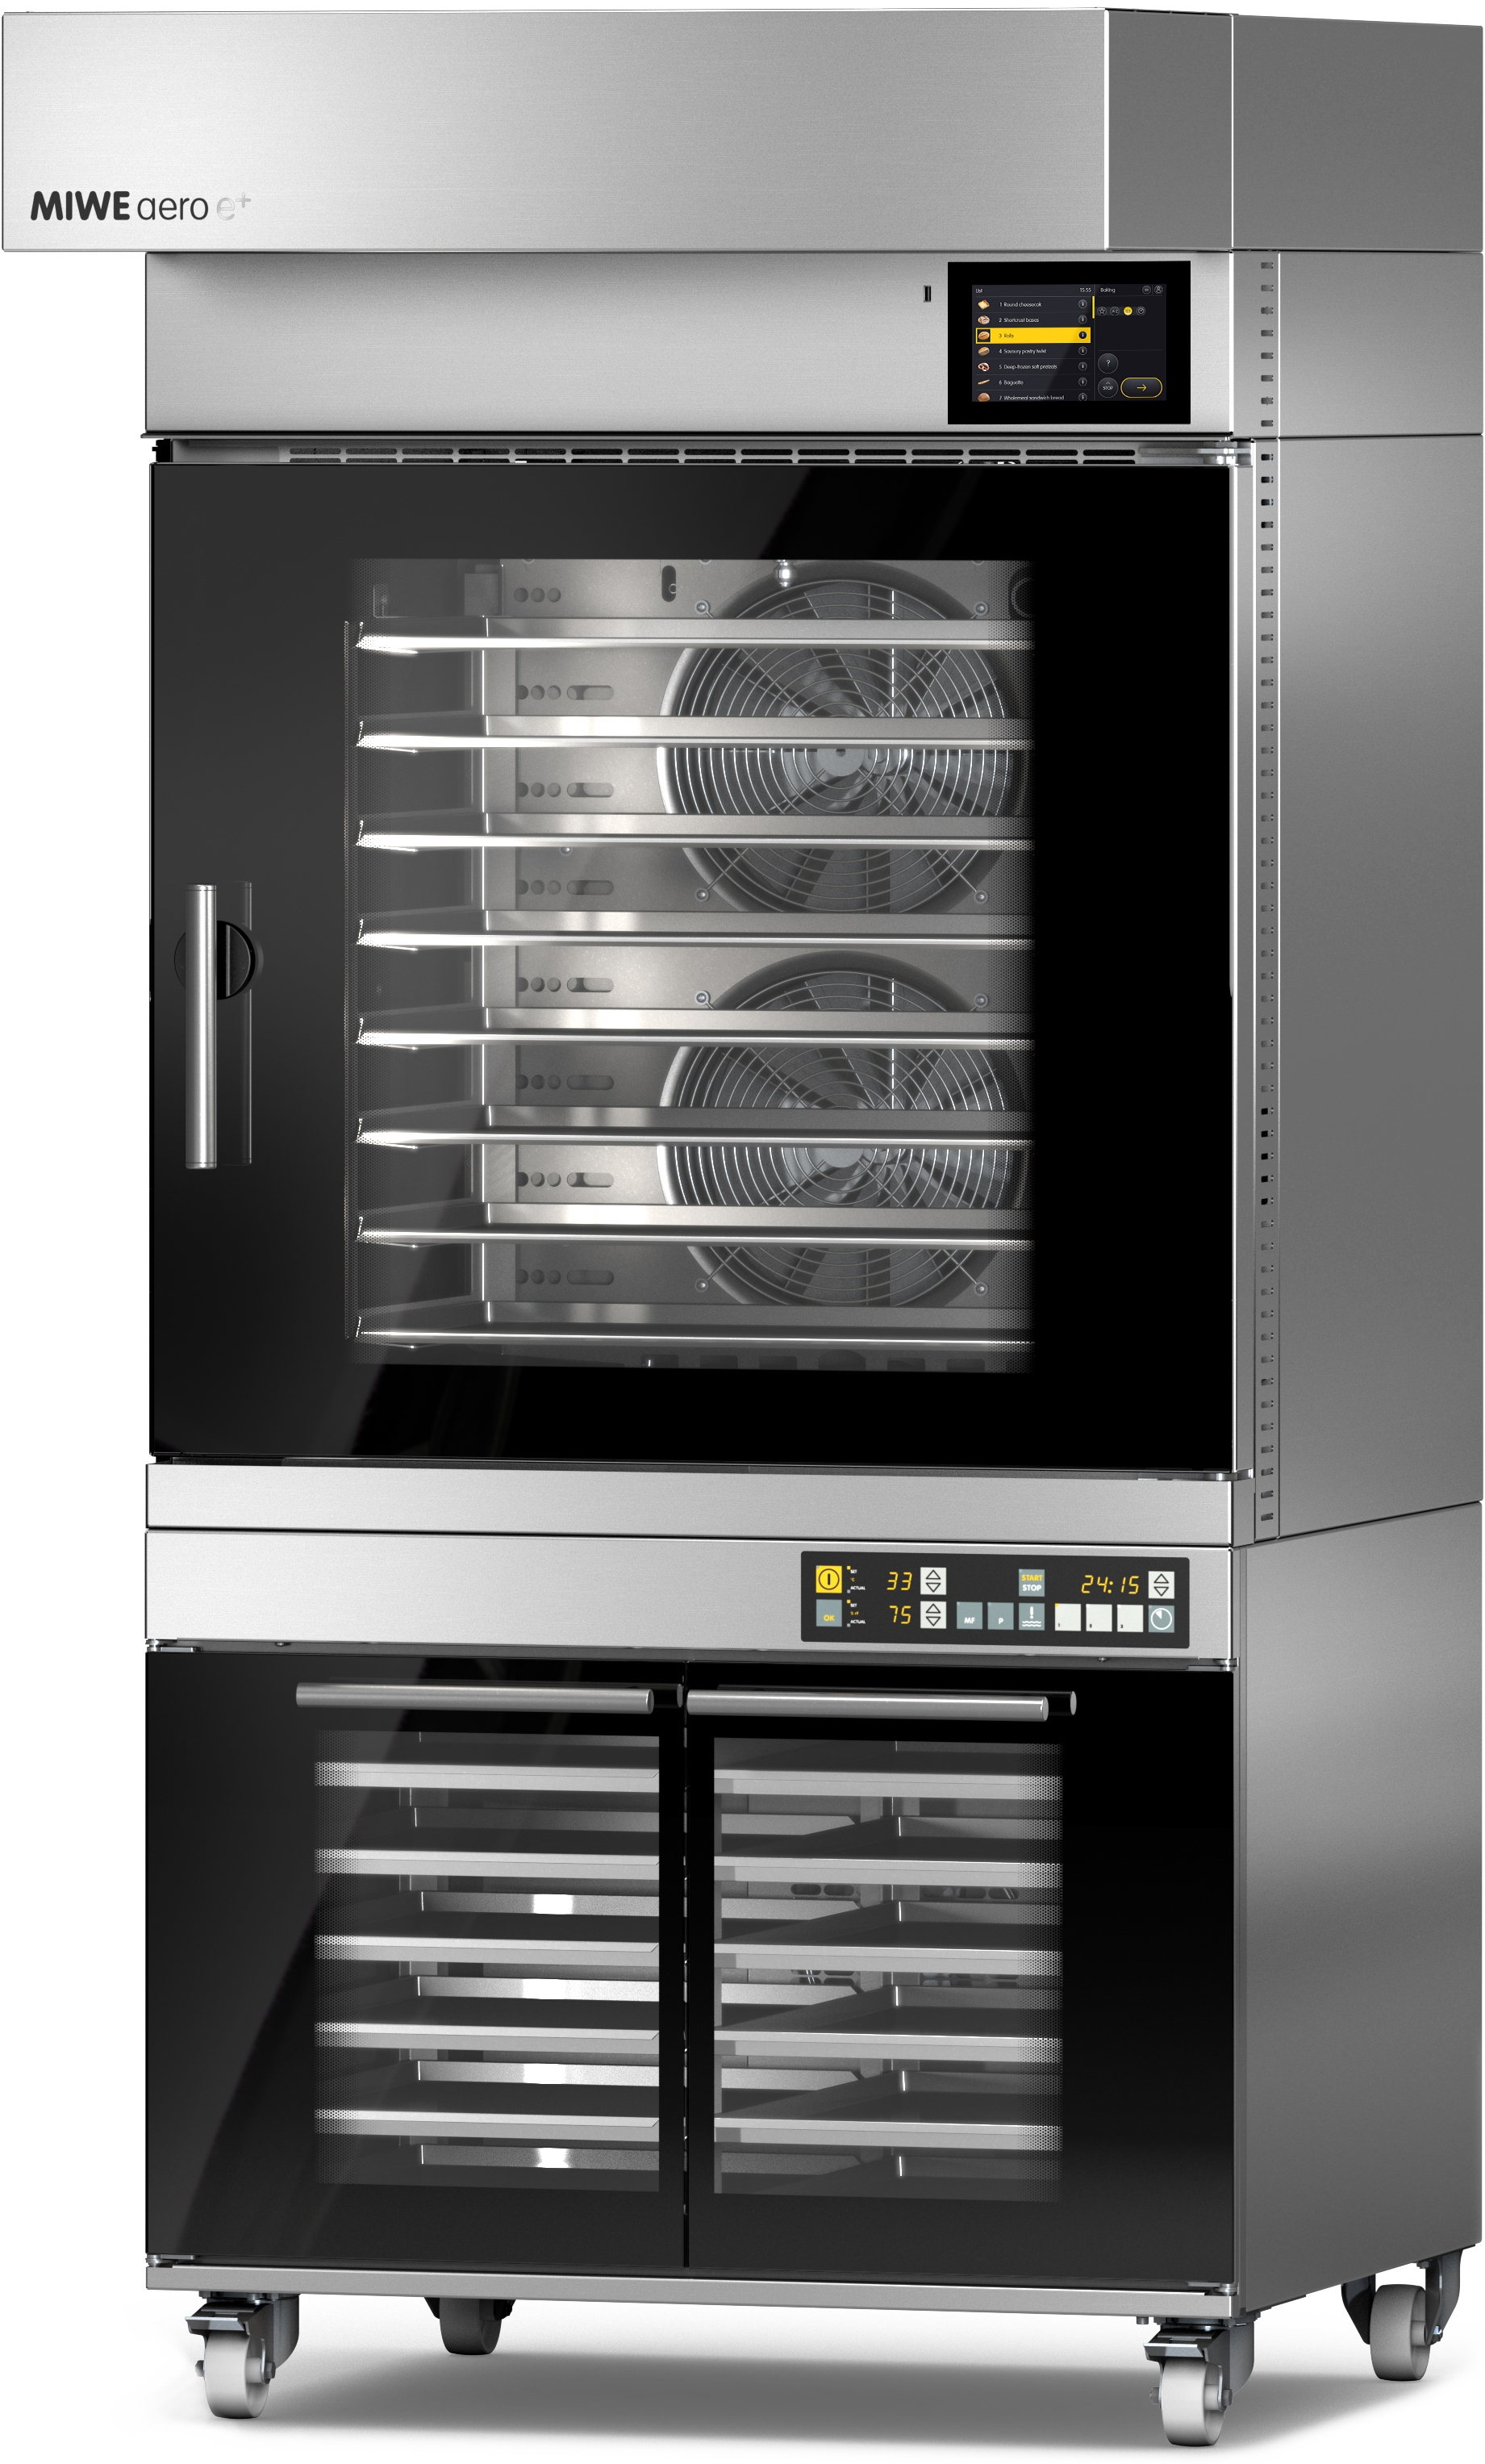 Backofen Gastro Gebraucht Miwe Aero E Convection Oven For Excellent Quality